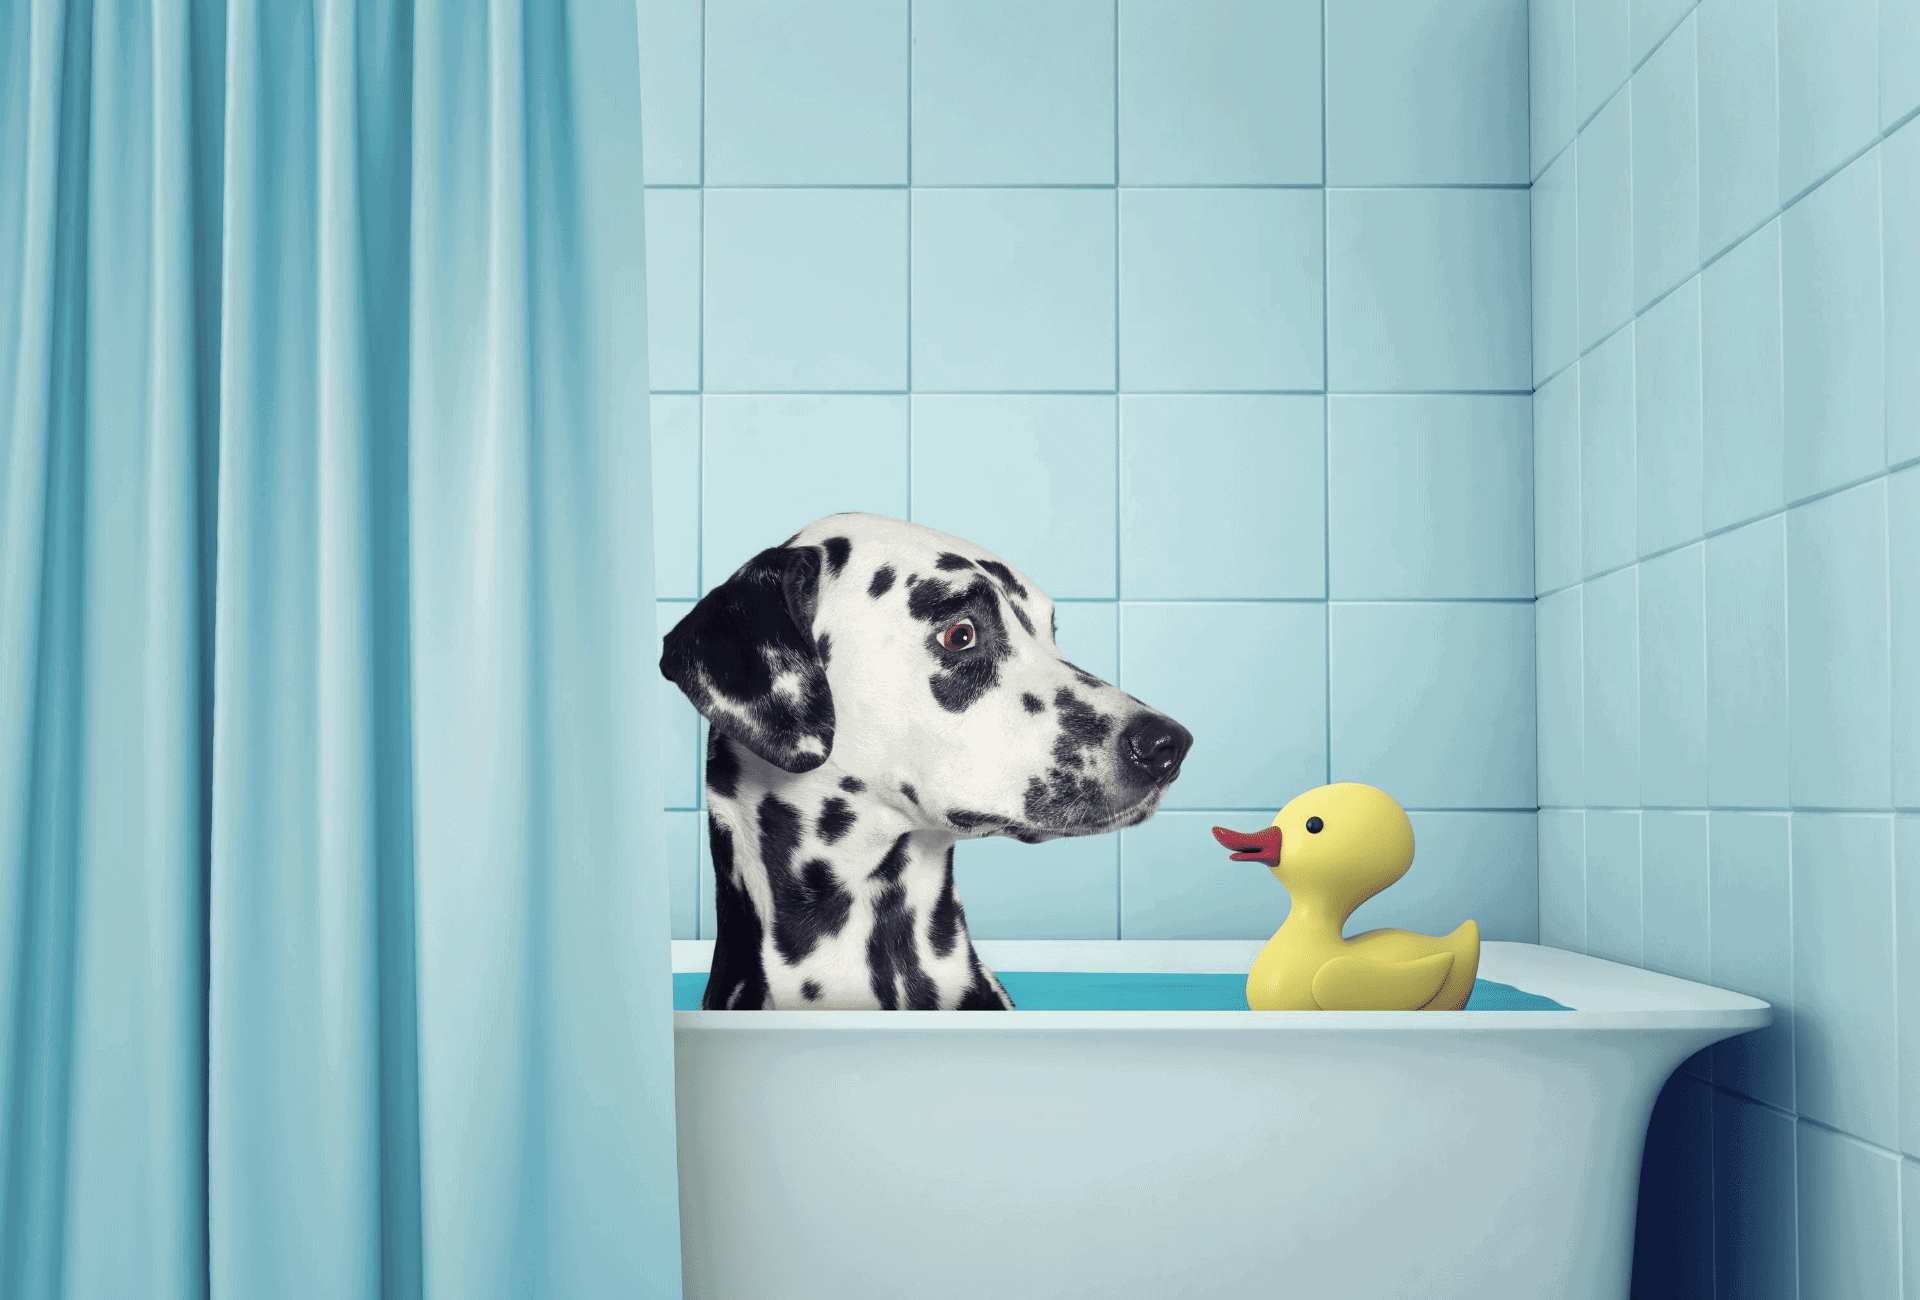 Dalmatian takes a bath to relief itchy skin